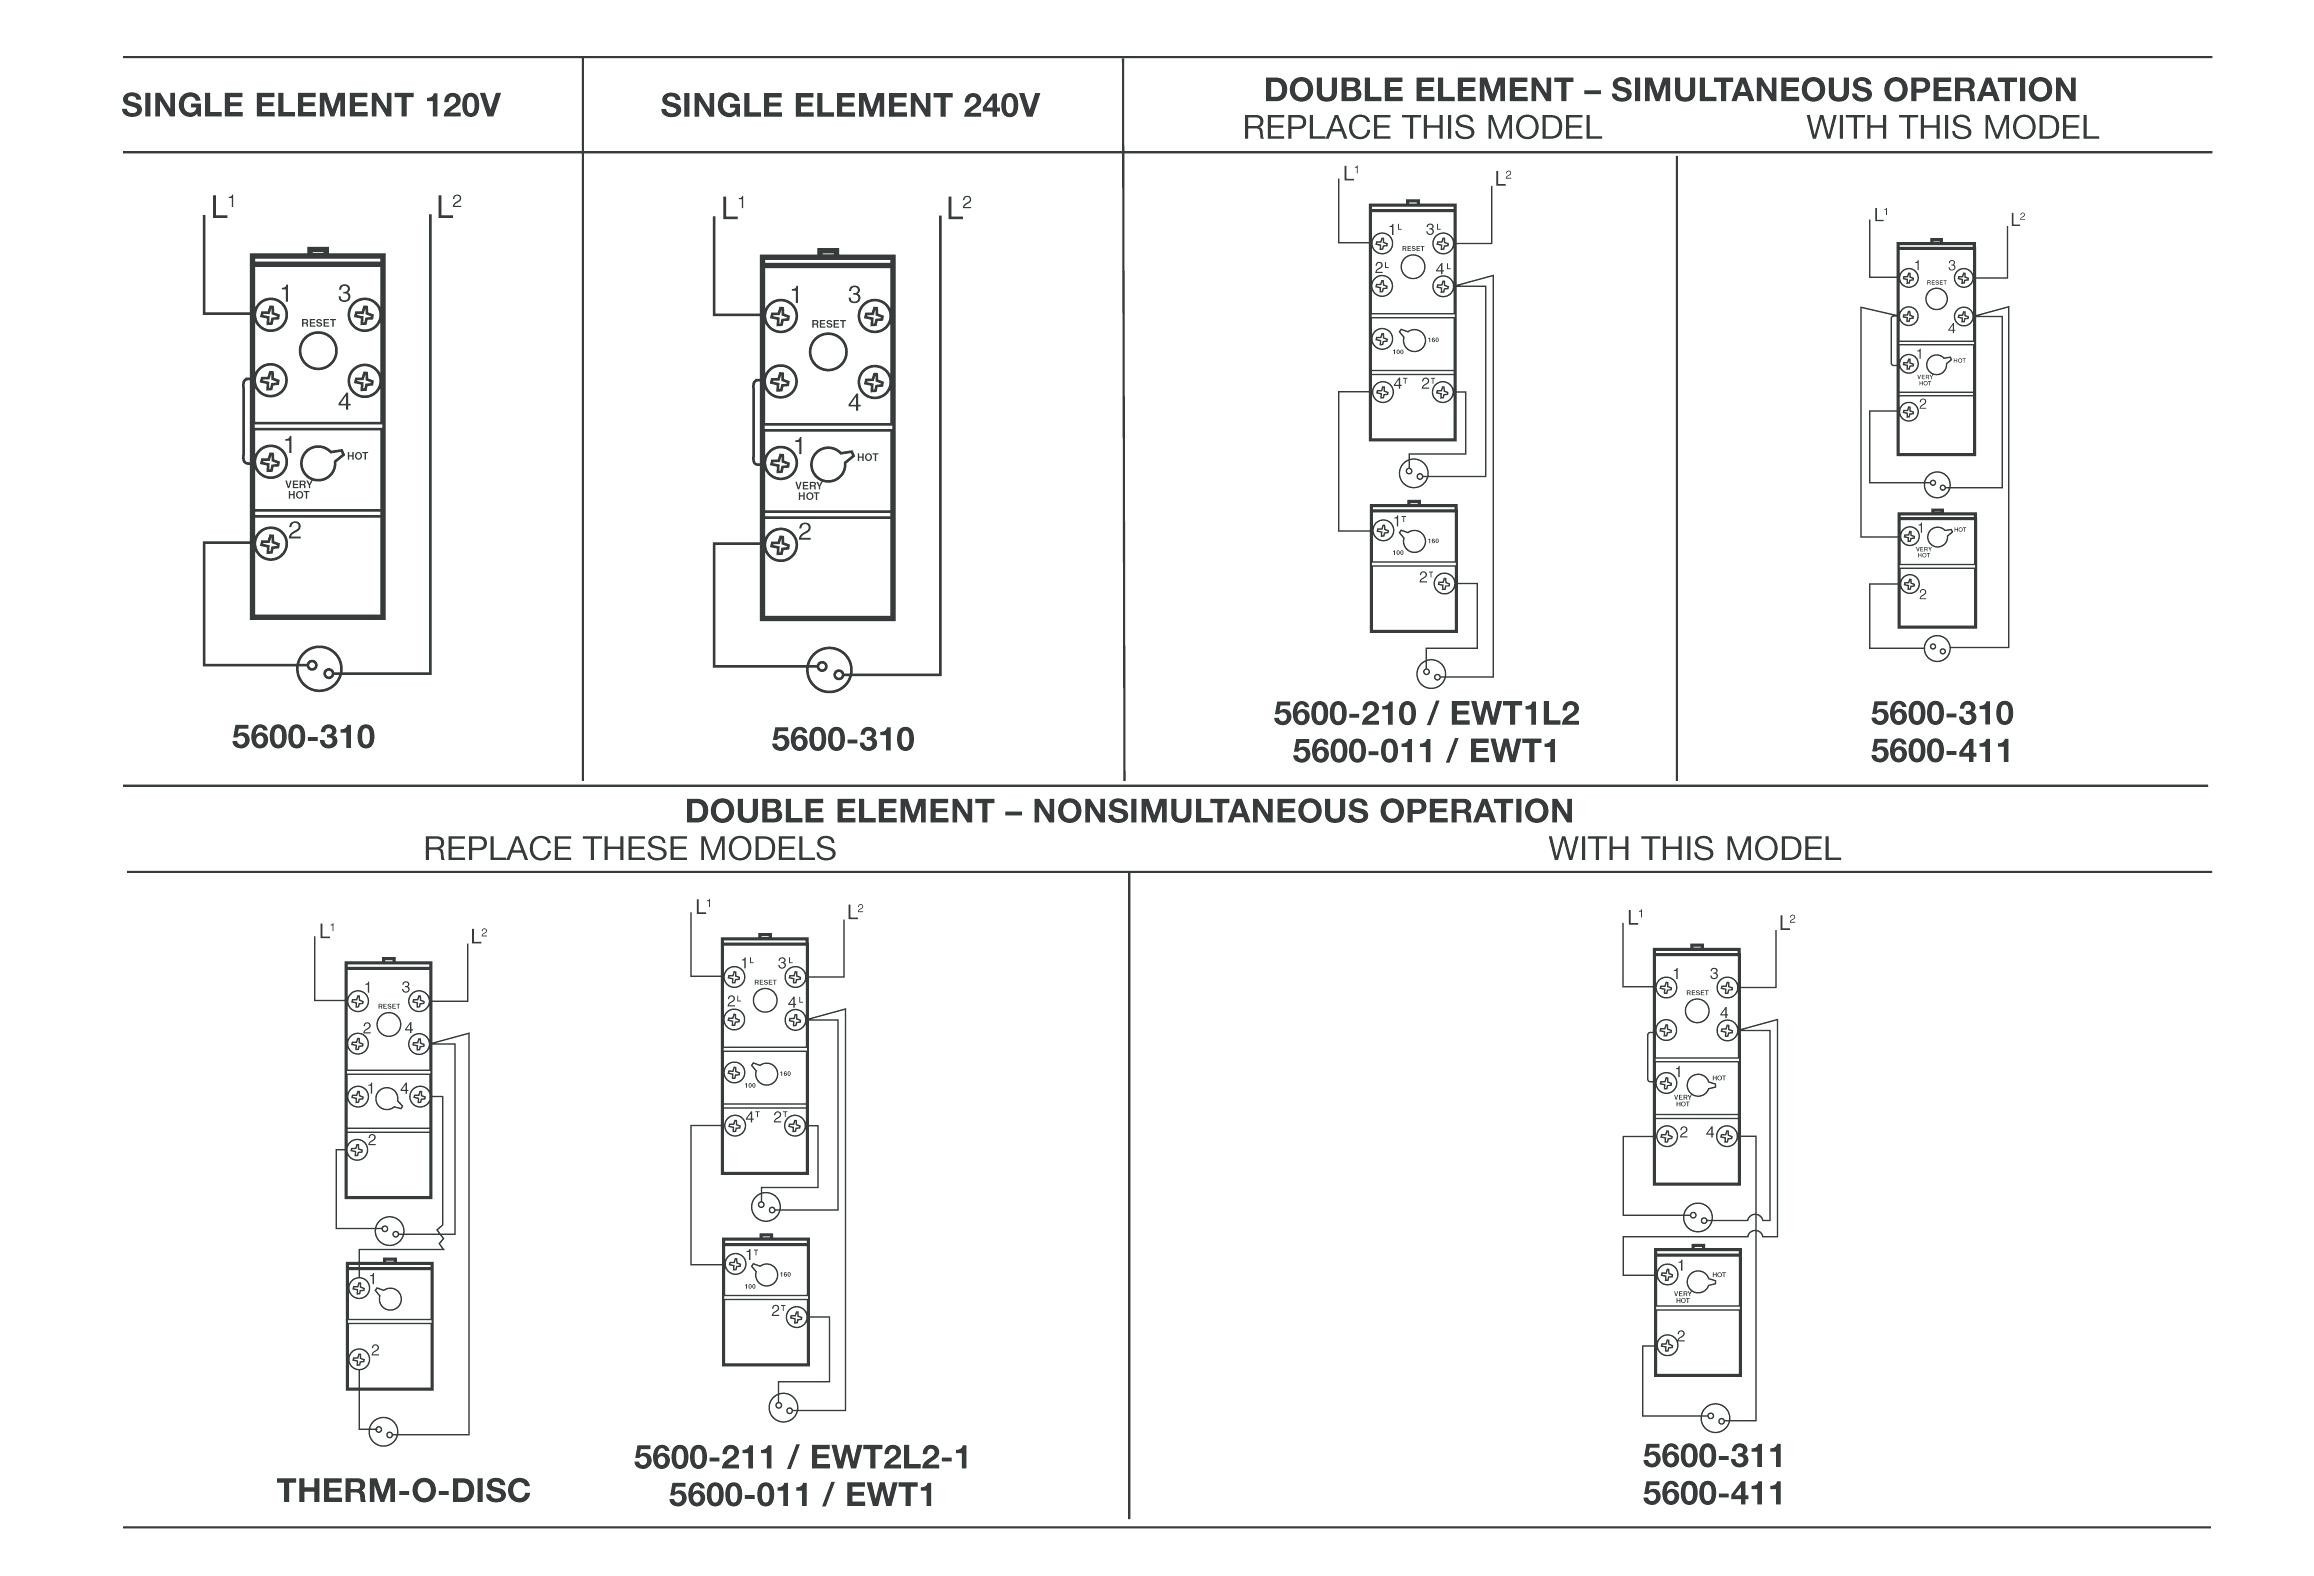 Atwood Water Heater Wiring Diagram New Suburban Gas Furnace Of - Atwood Water Heater Wiring Diagram